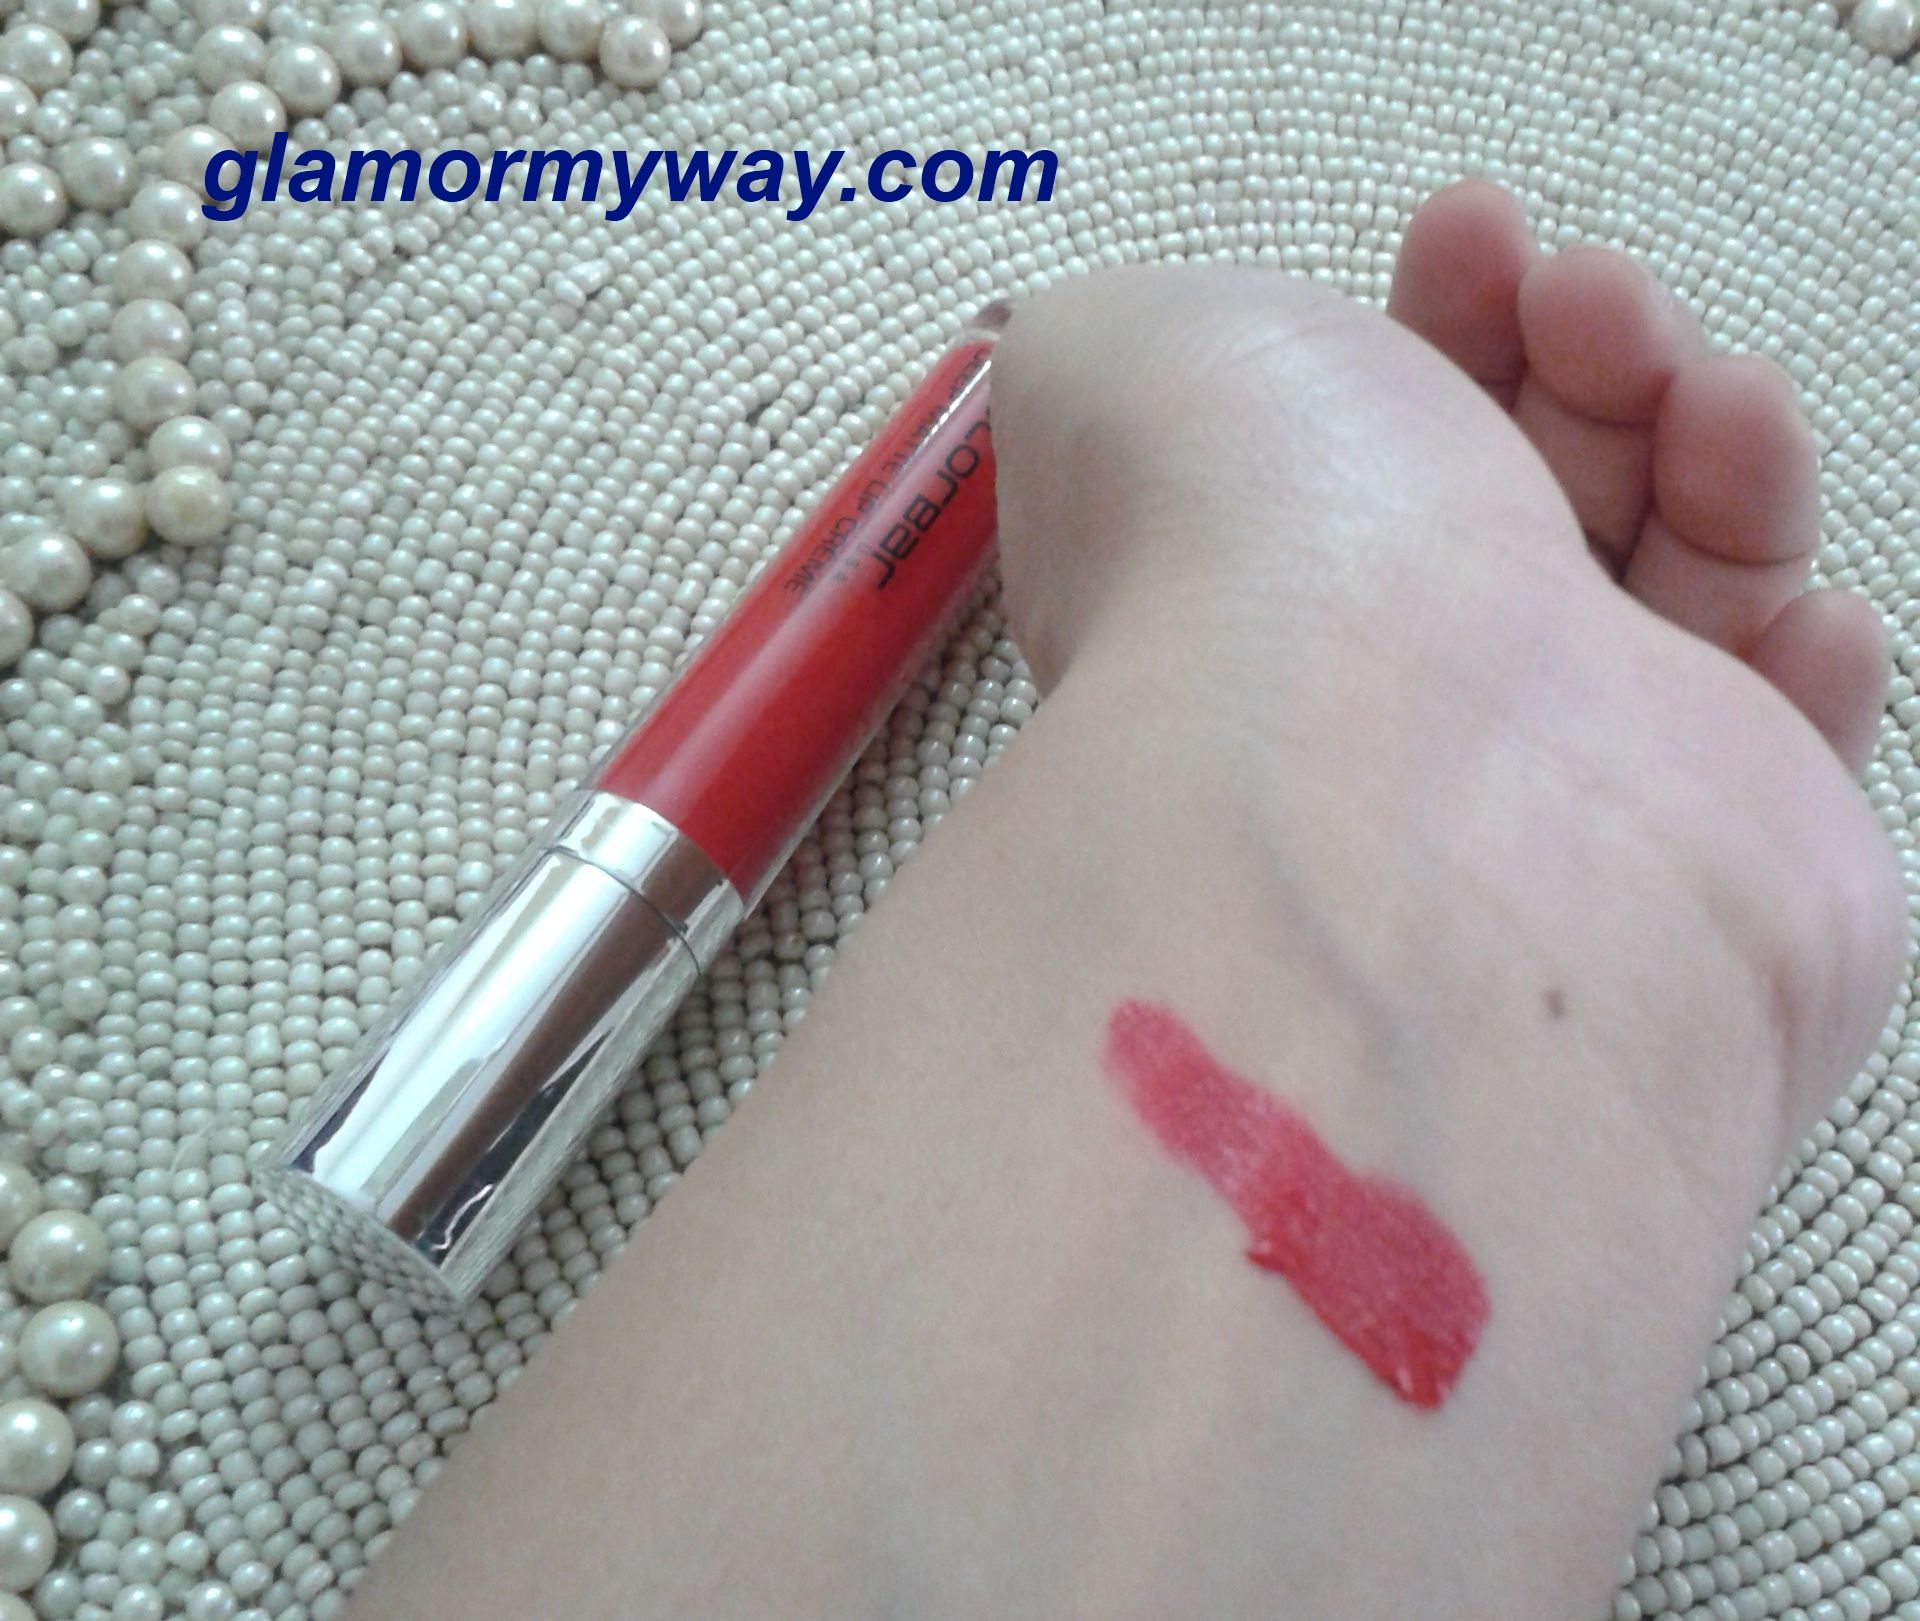 Colorbar Deep Matte Lip Creme in Deep Red Review, Swatch